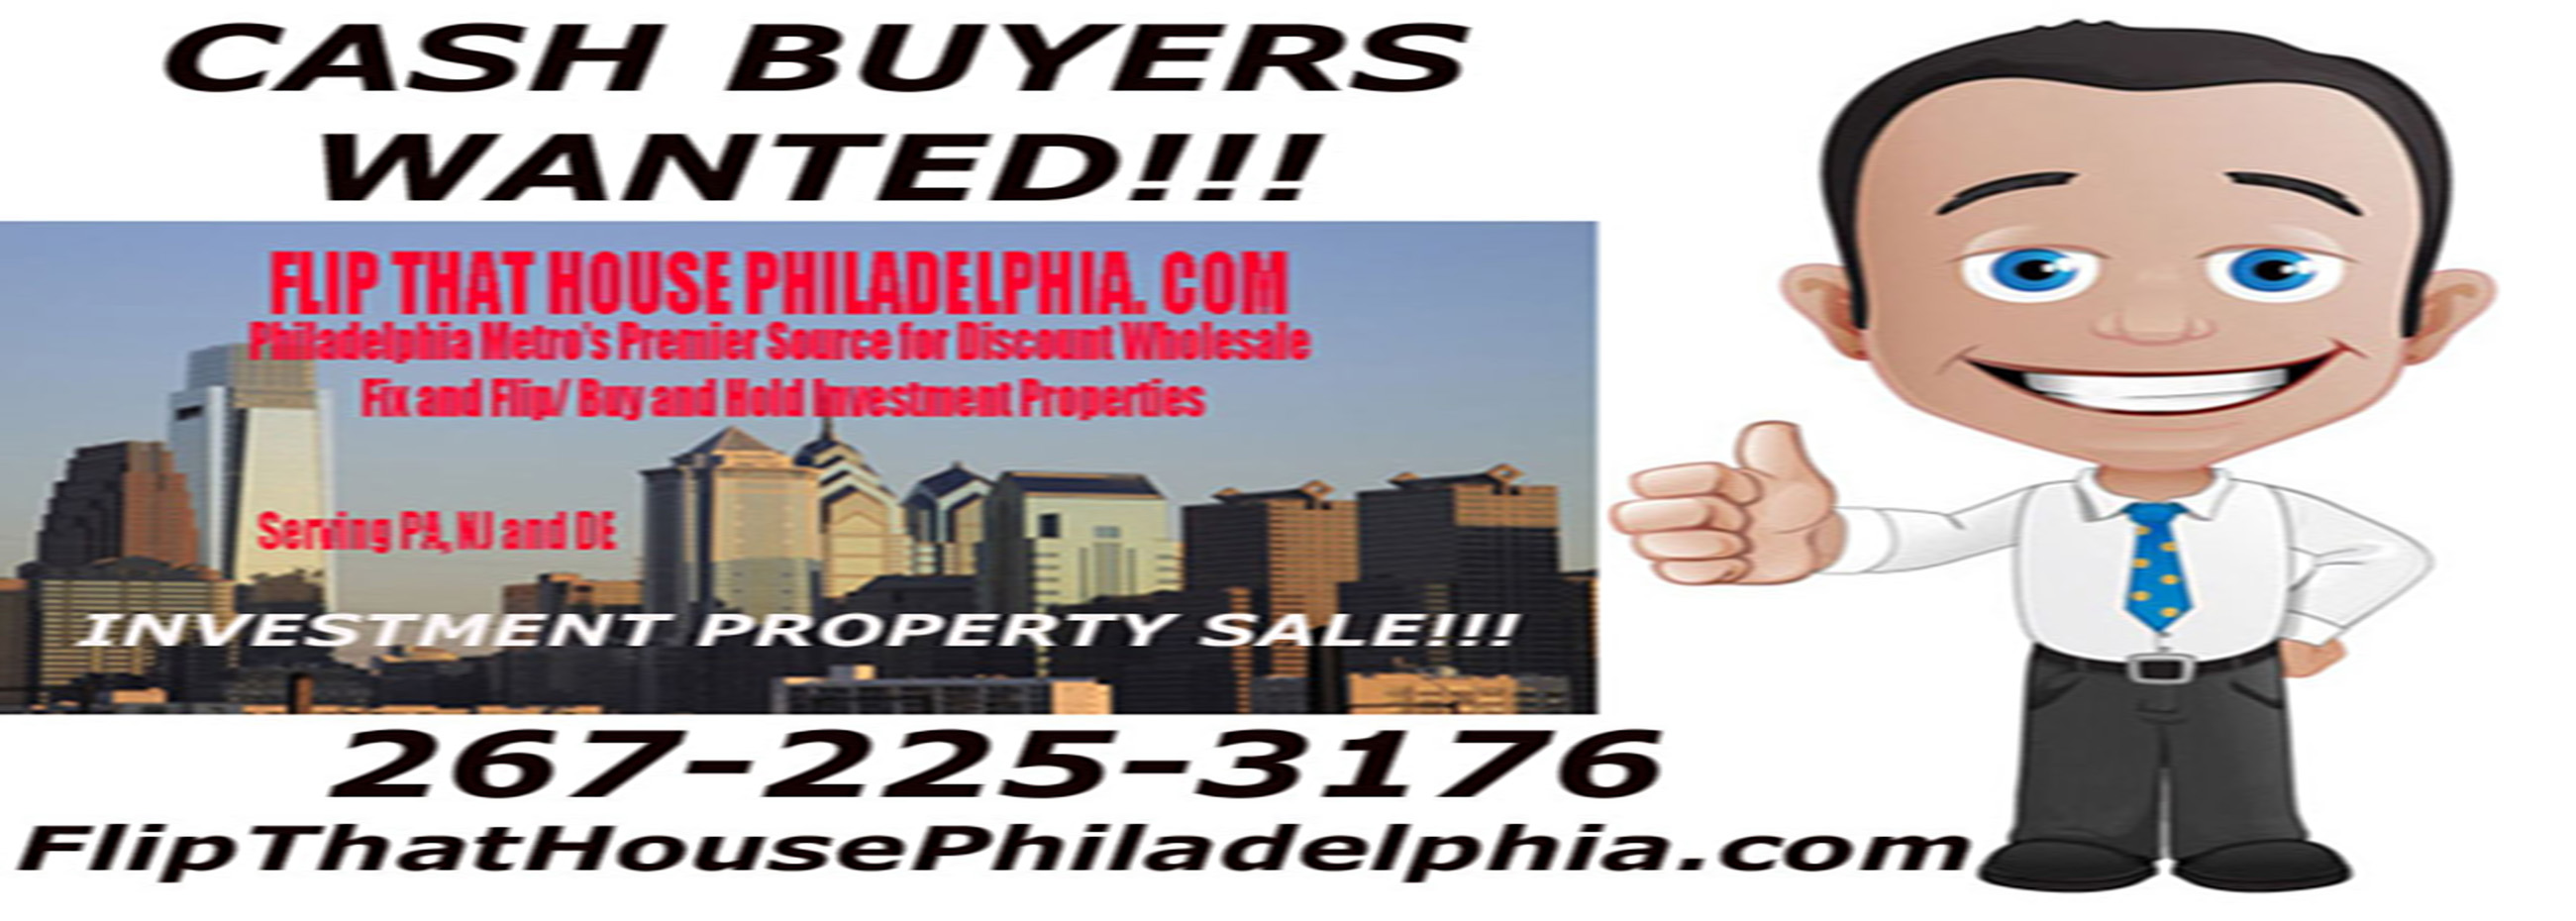 Philadelphia PA-NJ-DE Investment Properties for Sale Cash Buyers Wanted!